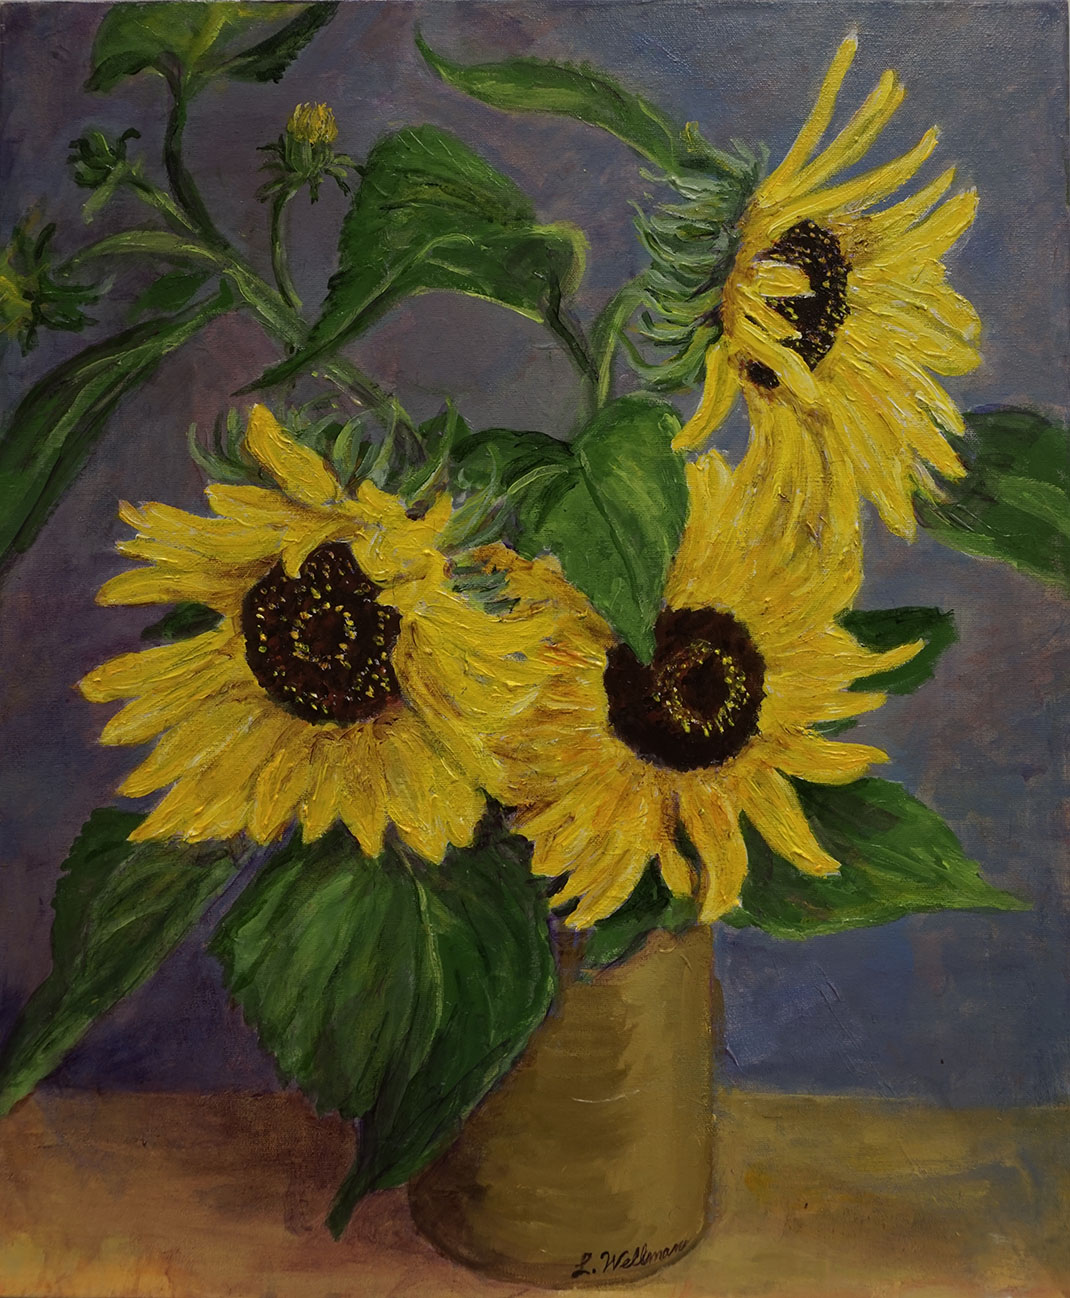 "Loraine Wellman, ""Sunflowers (Homage to Van Gogh)"", 2014, Acrylic on Canvas, 24 x 20 inches. Estimate: $500"